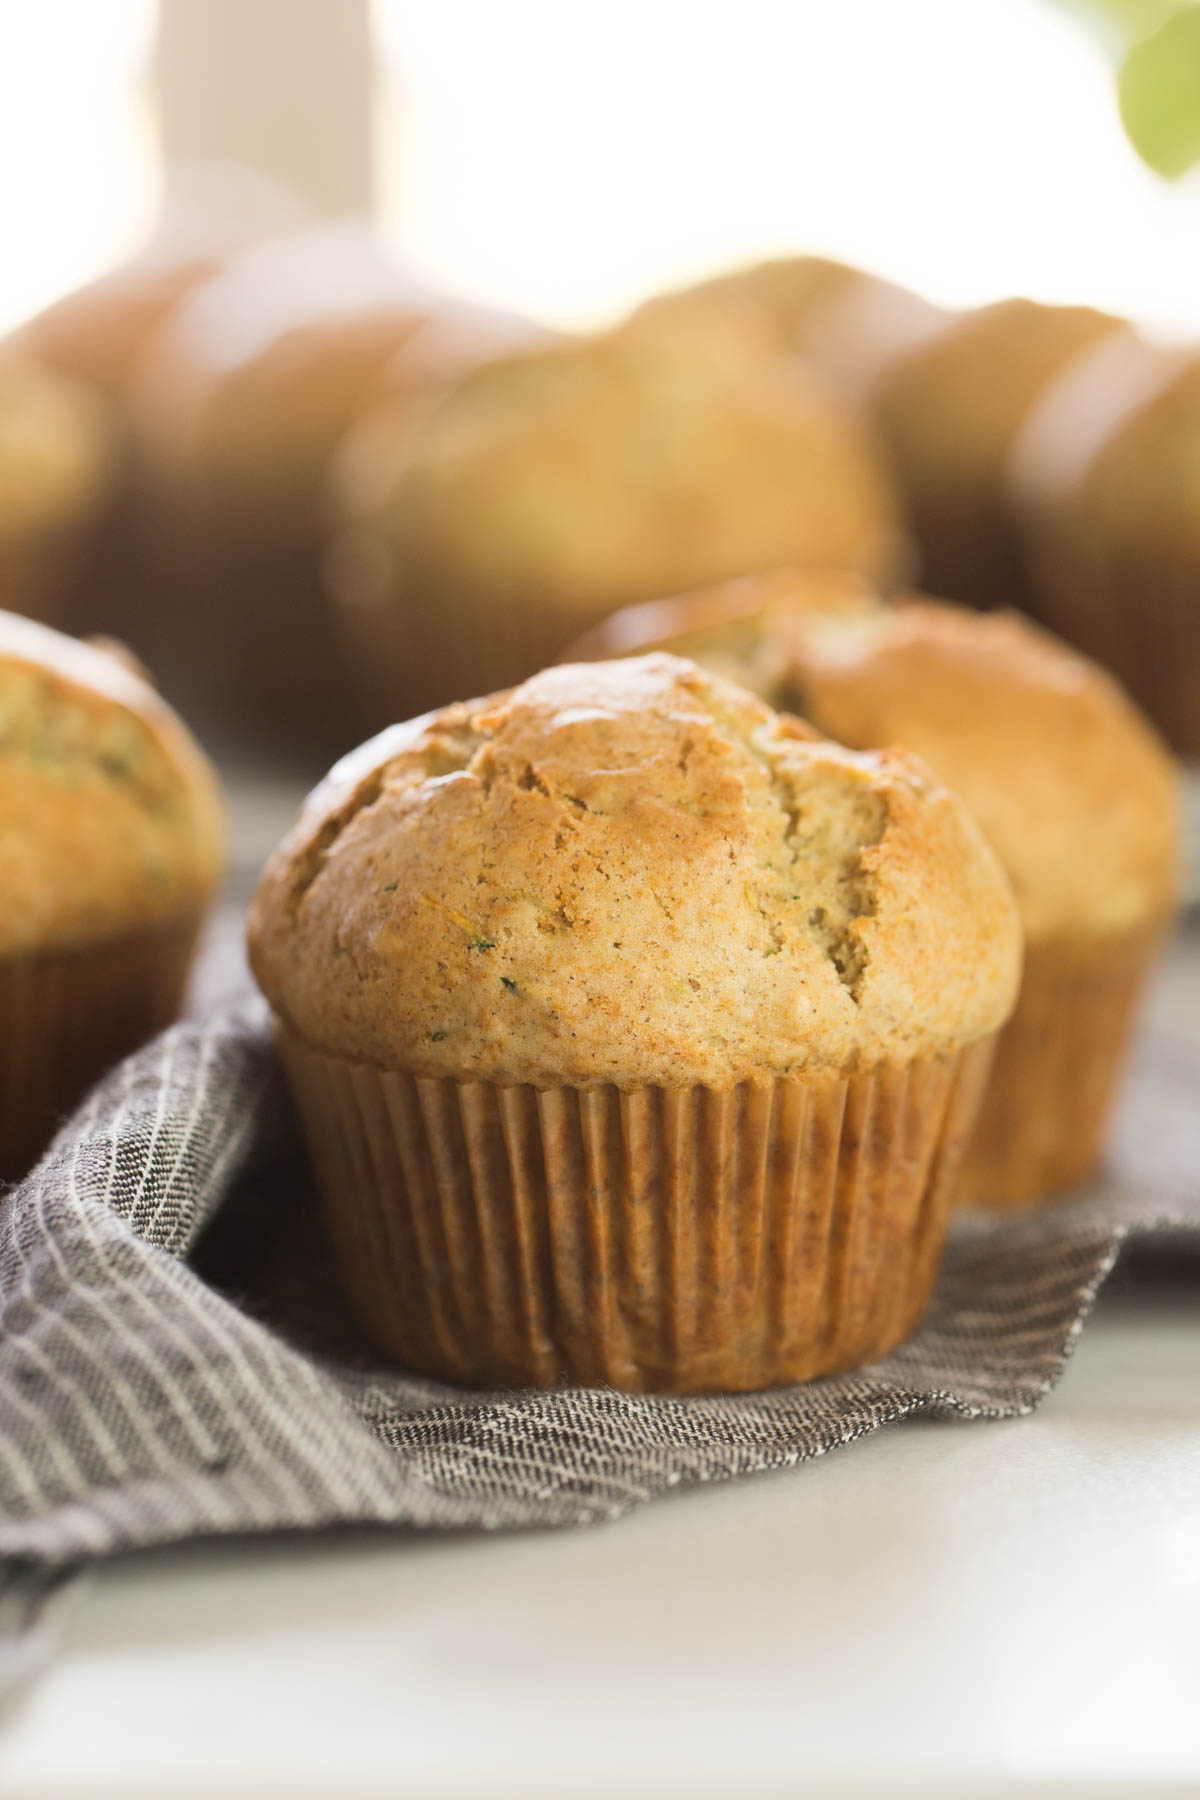 Three Healthier Zucchini Muffins on a cloth napkin, with more muffins in the background.